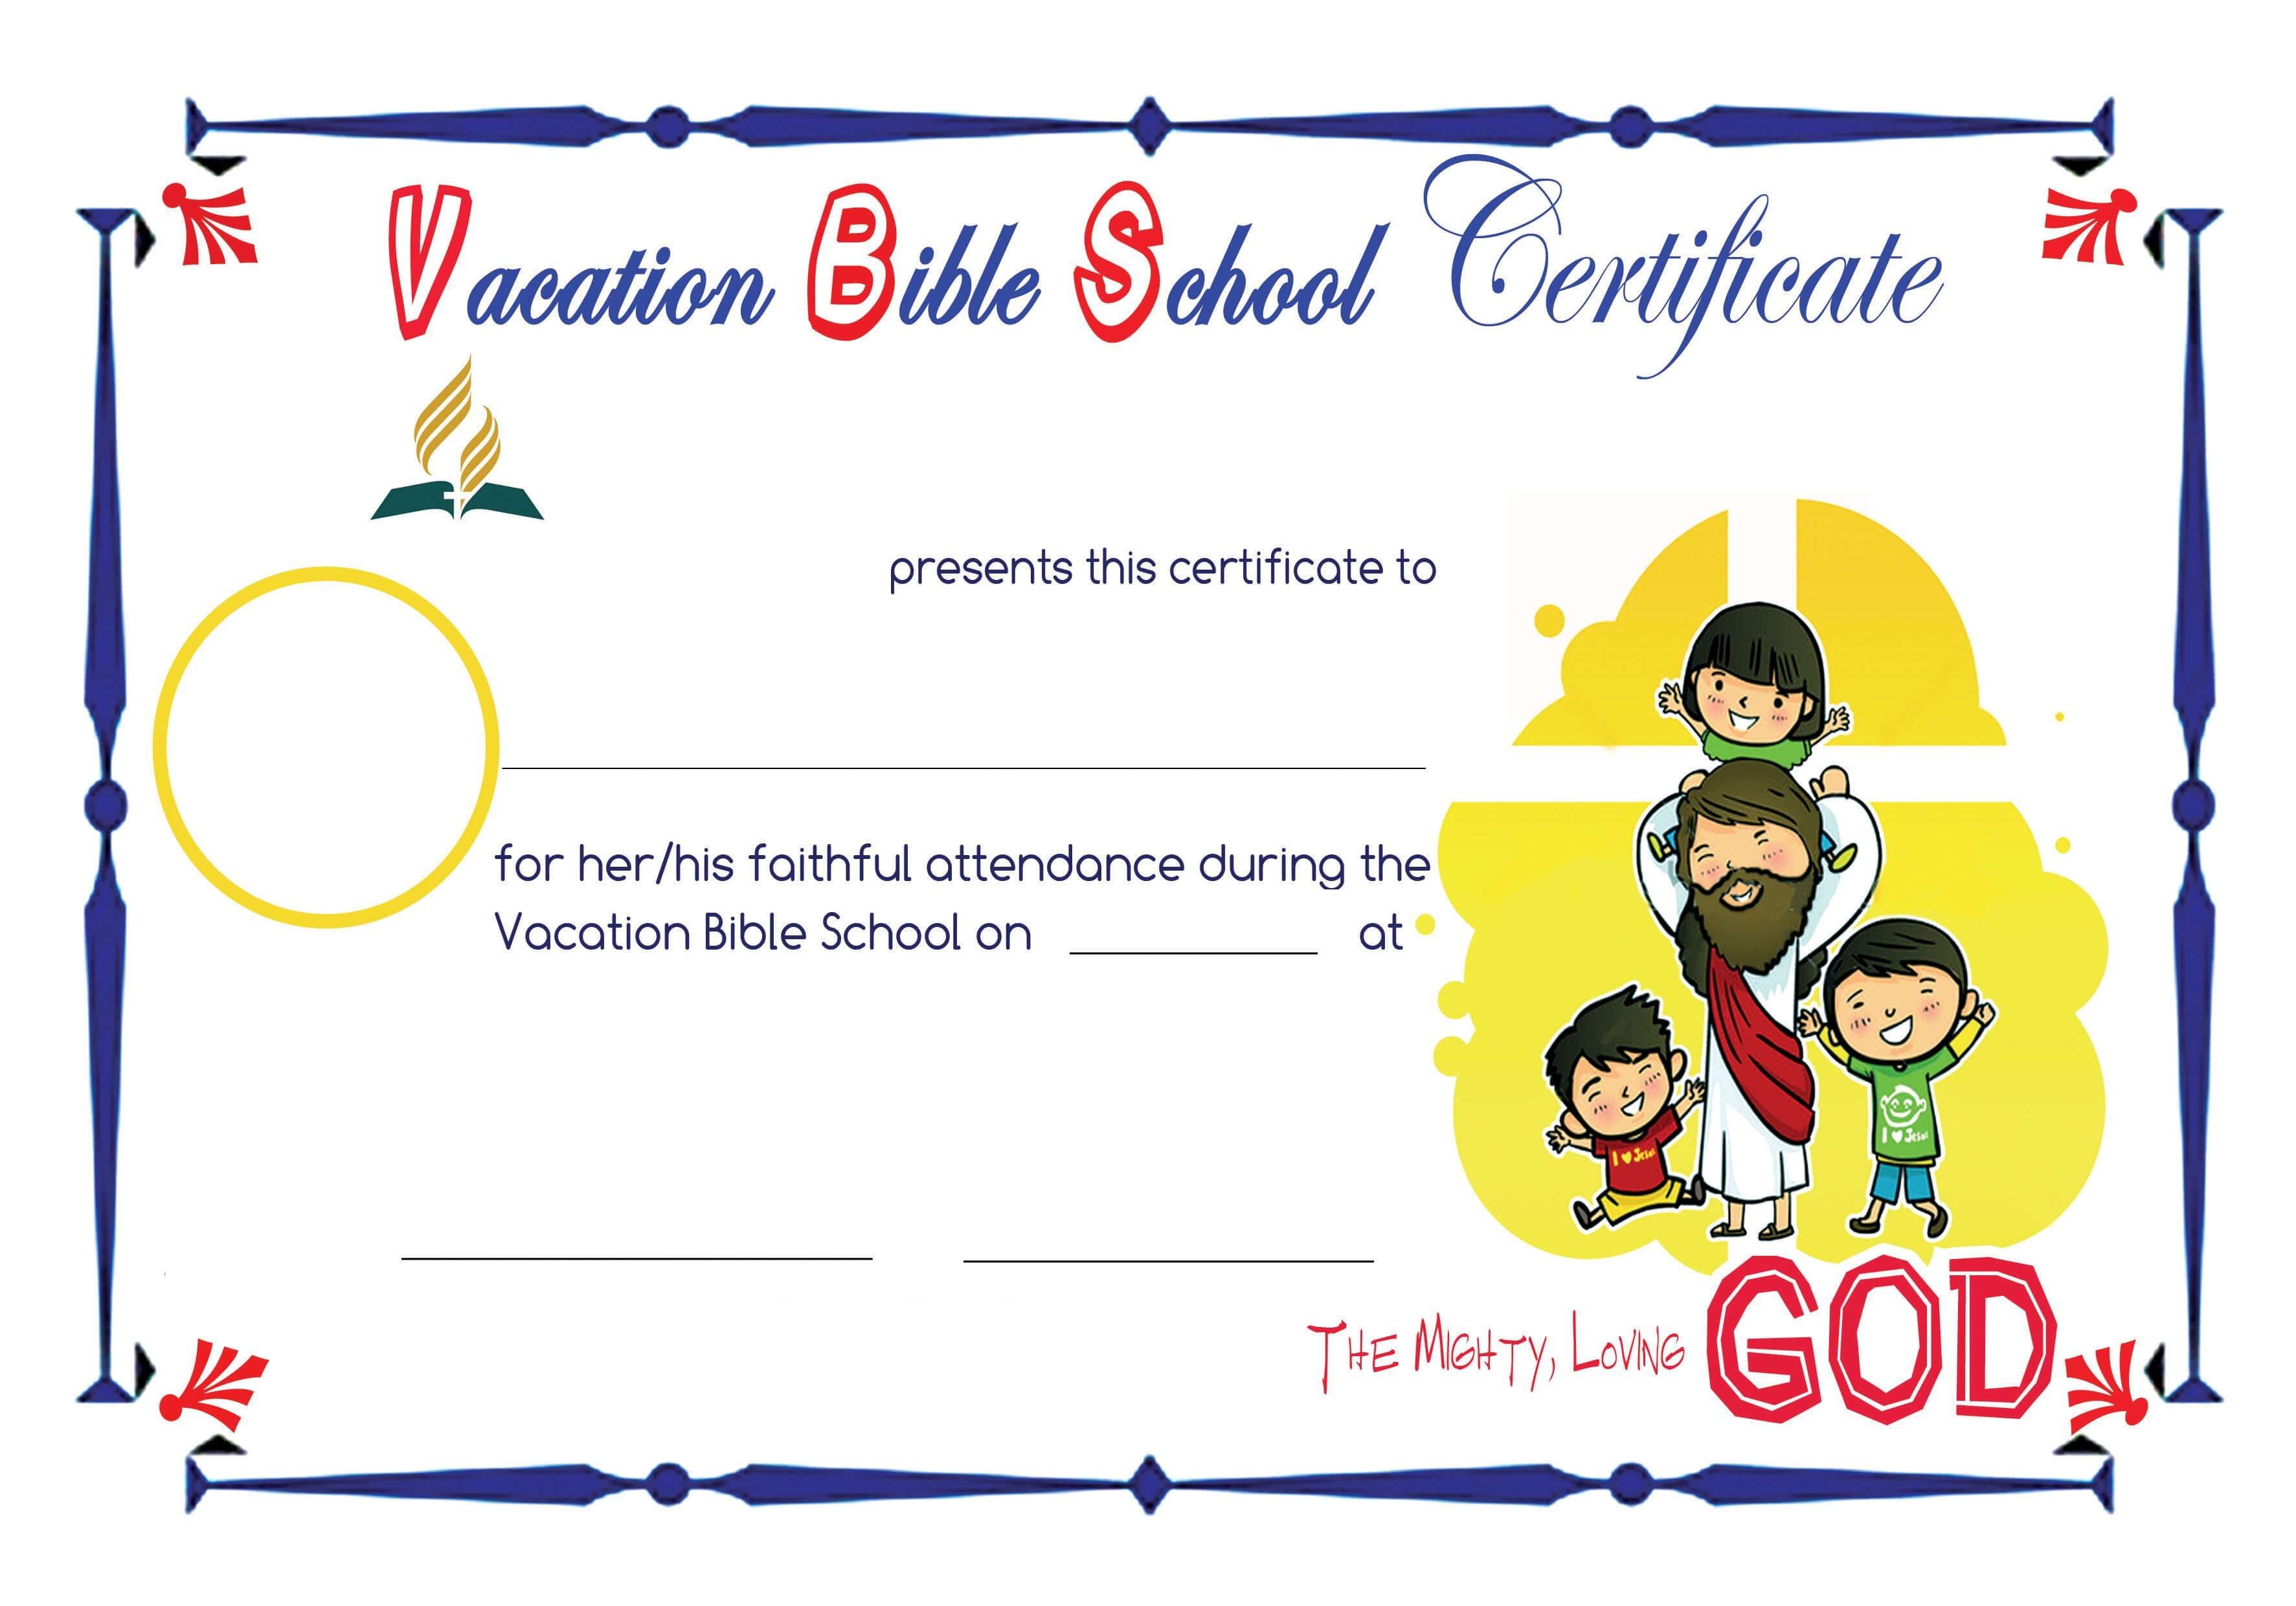 Bible School Certificates Pictures To Pin On Pinterest regarding Christian Certificate Template